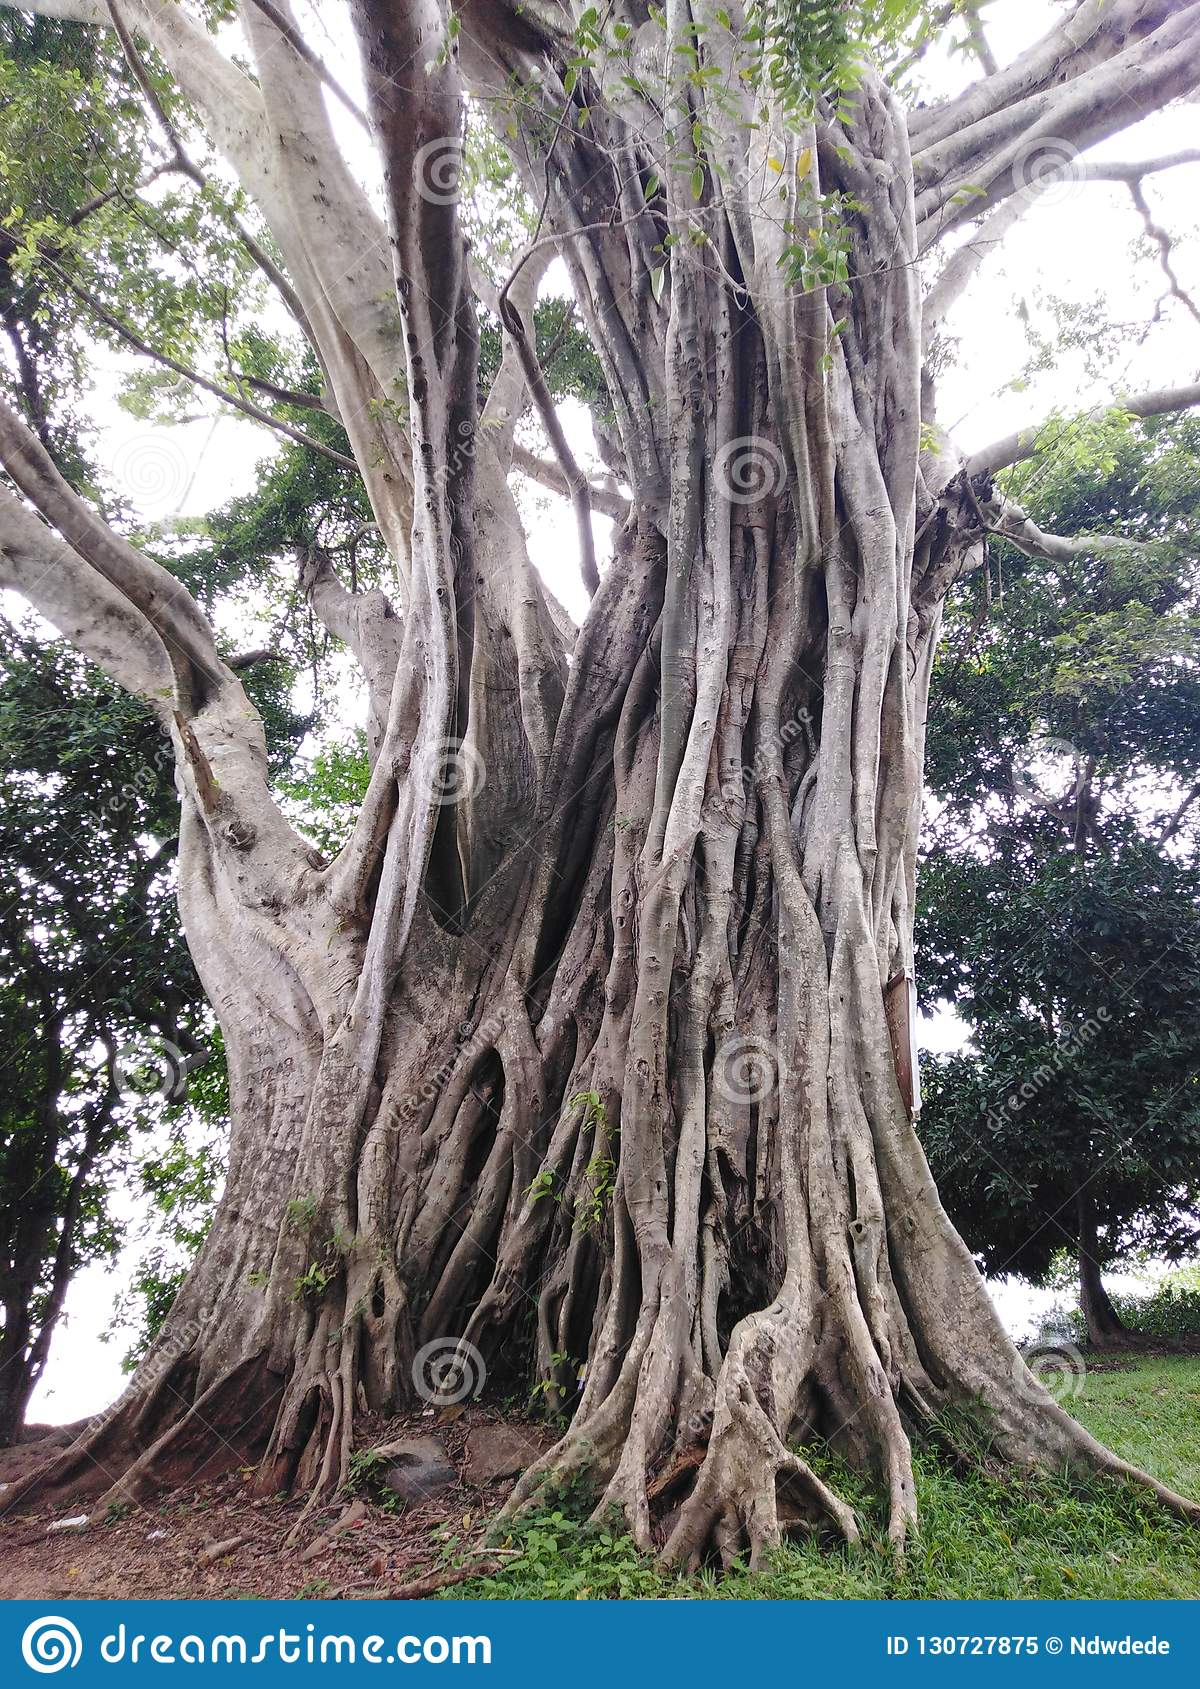 Thousand Years Old Huge Trees Stock Image.